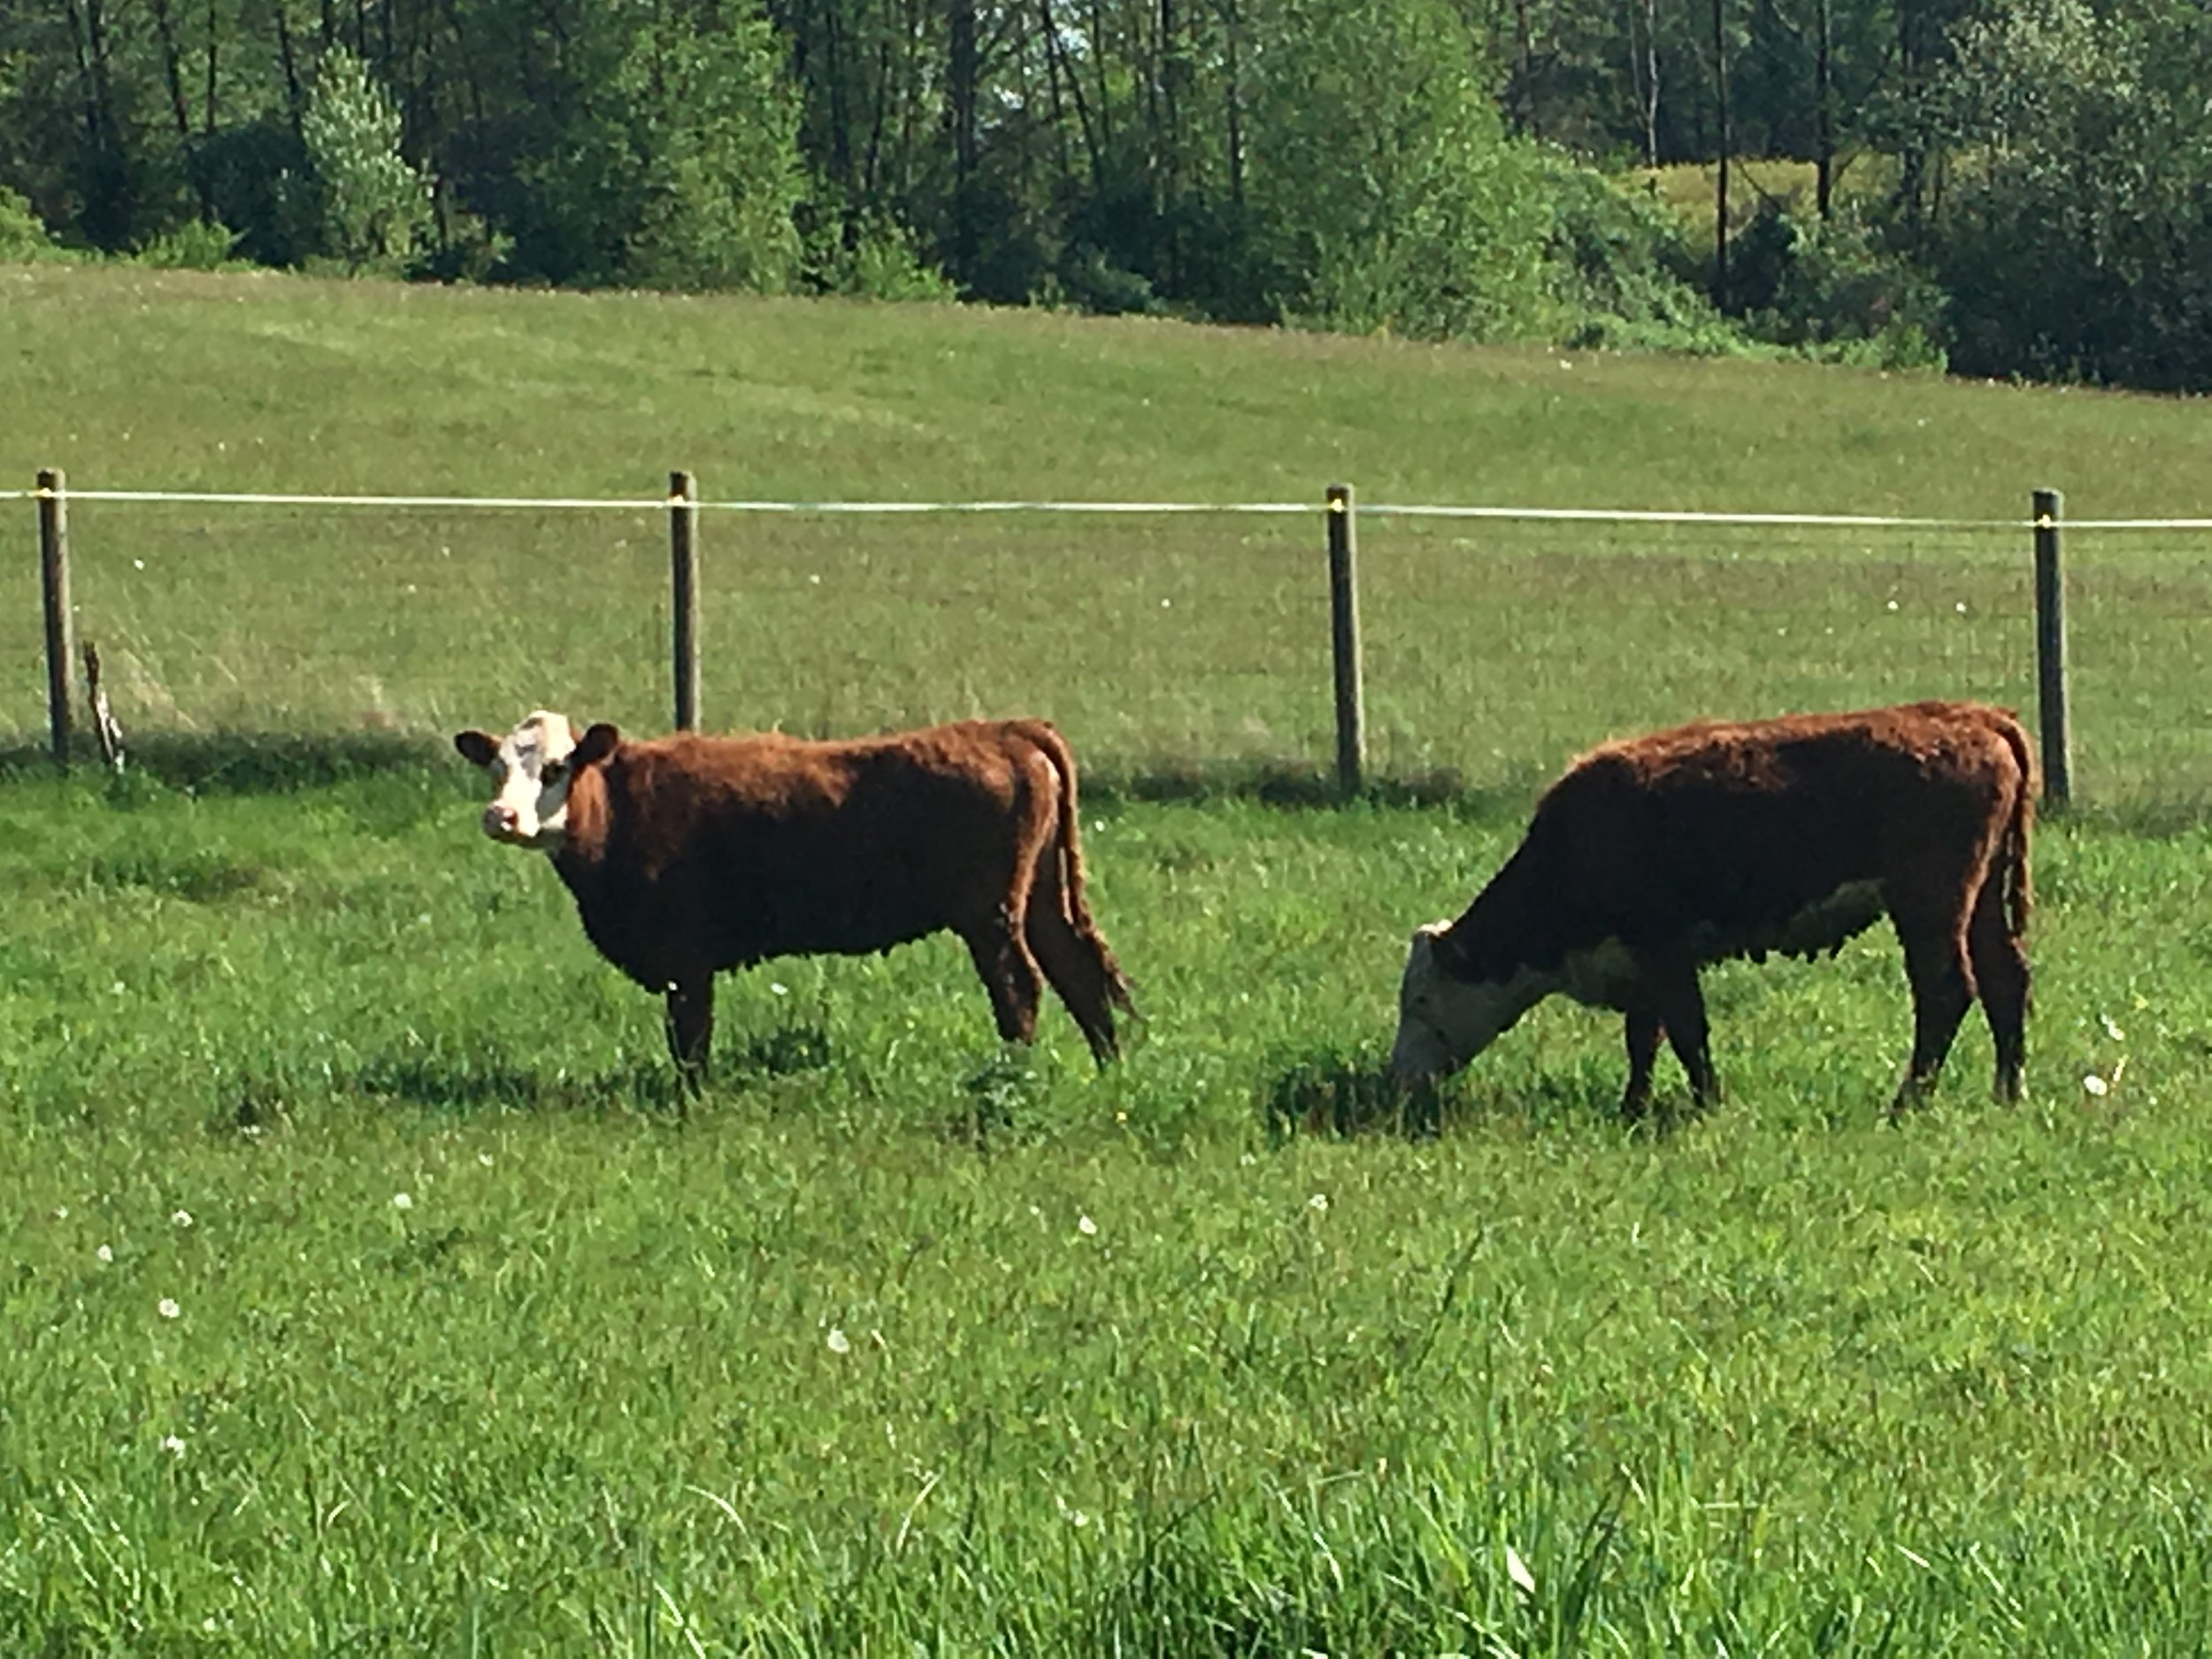 That cows should roam outdoors in a field, not in a feed lot! -